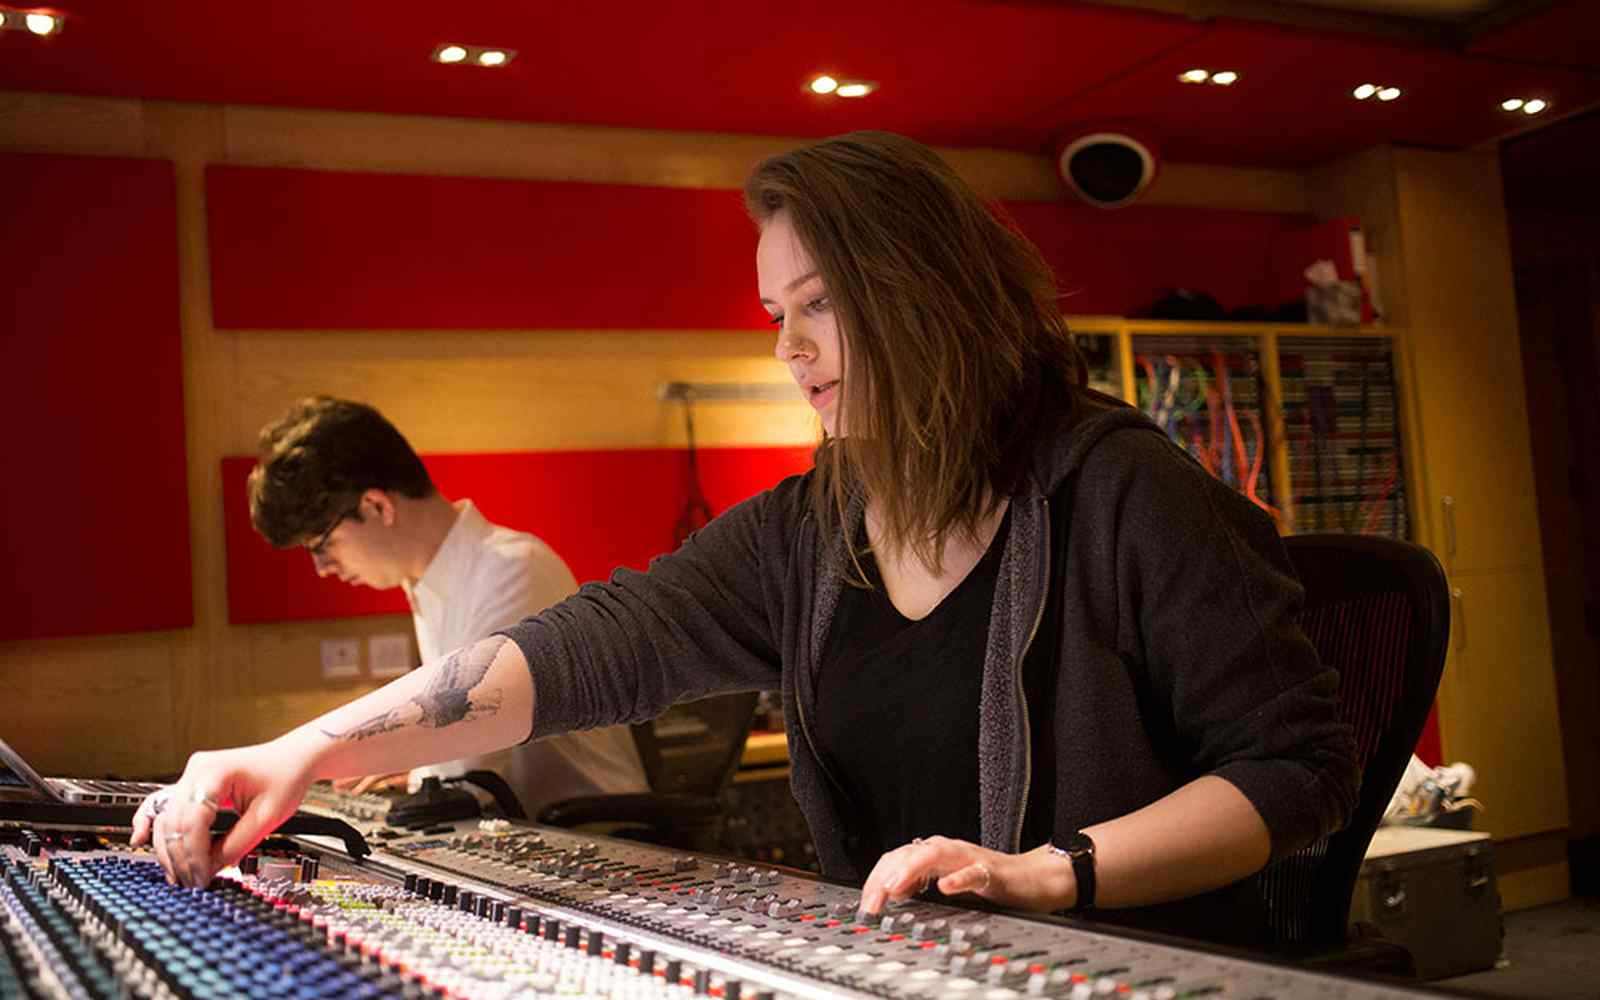 Students helping to mix an album at Abbey Road Studios